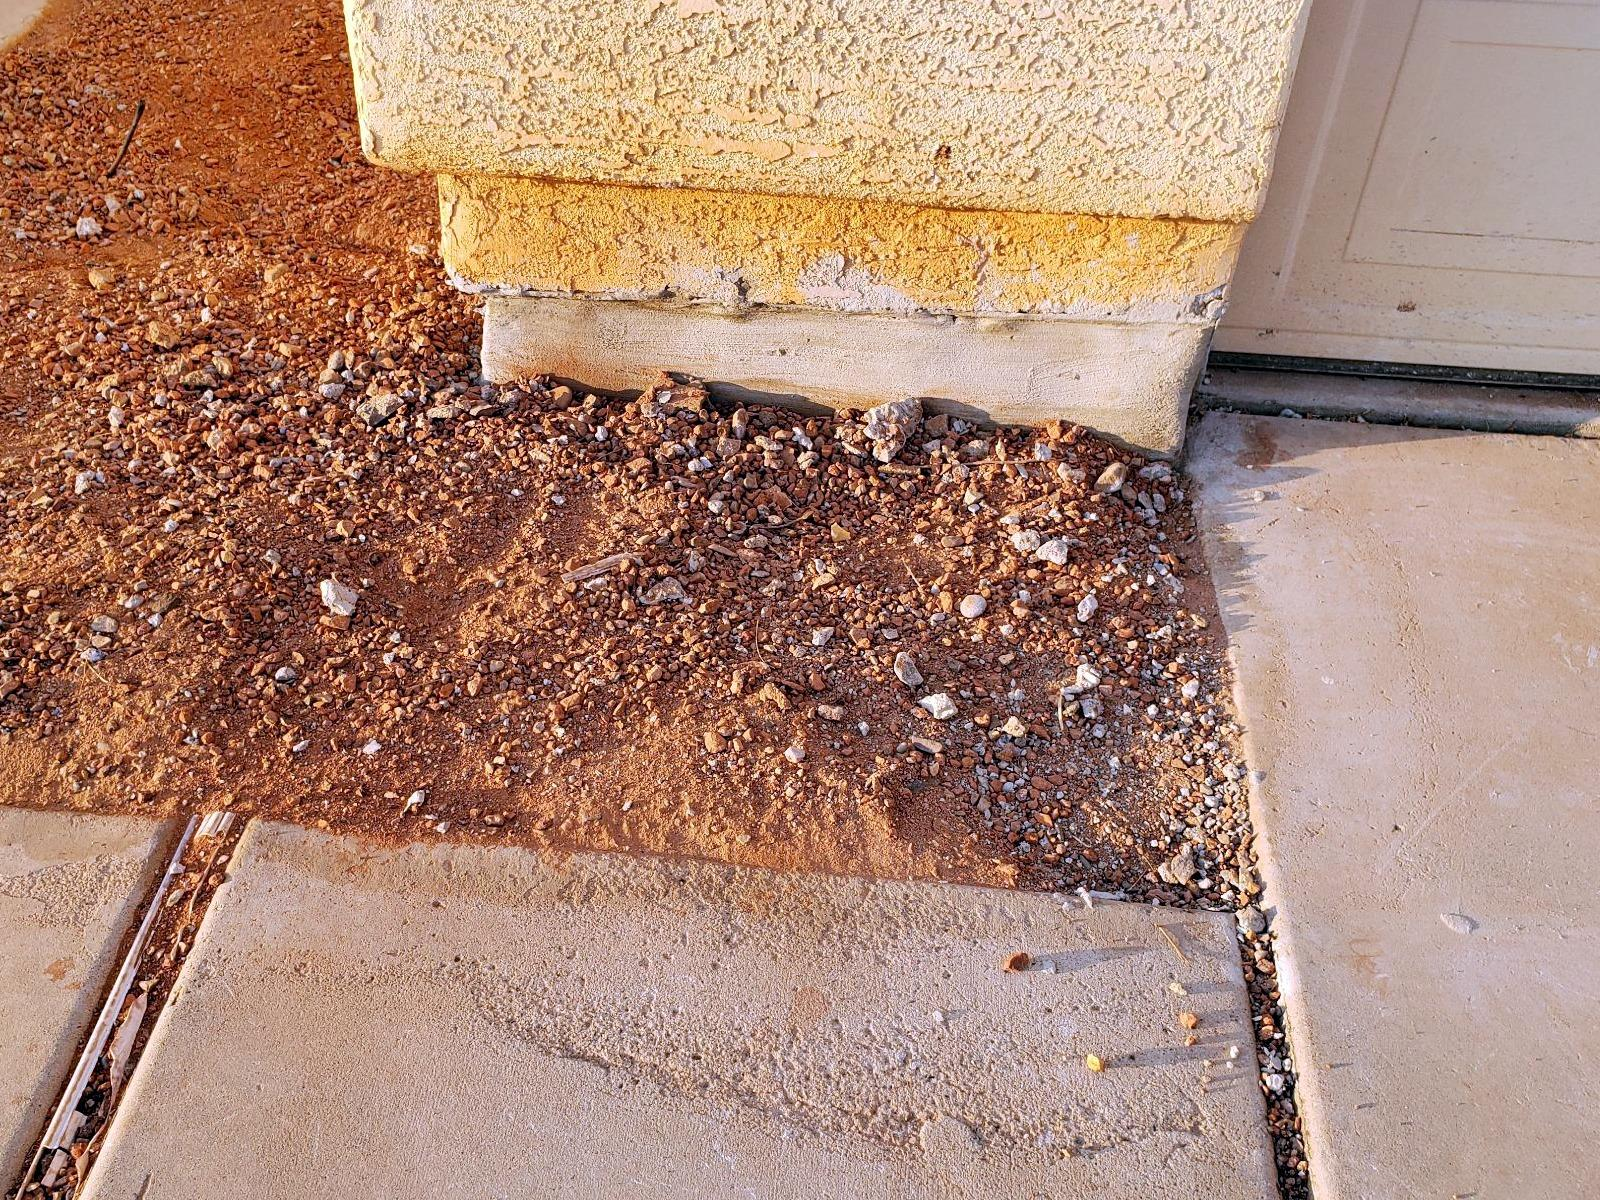 Concrete Stem Wall Repair - Glendale, AZ - After Photo